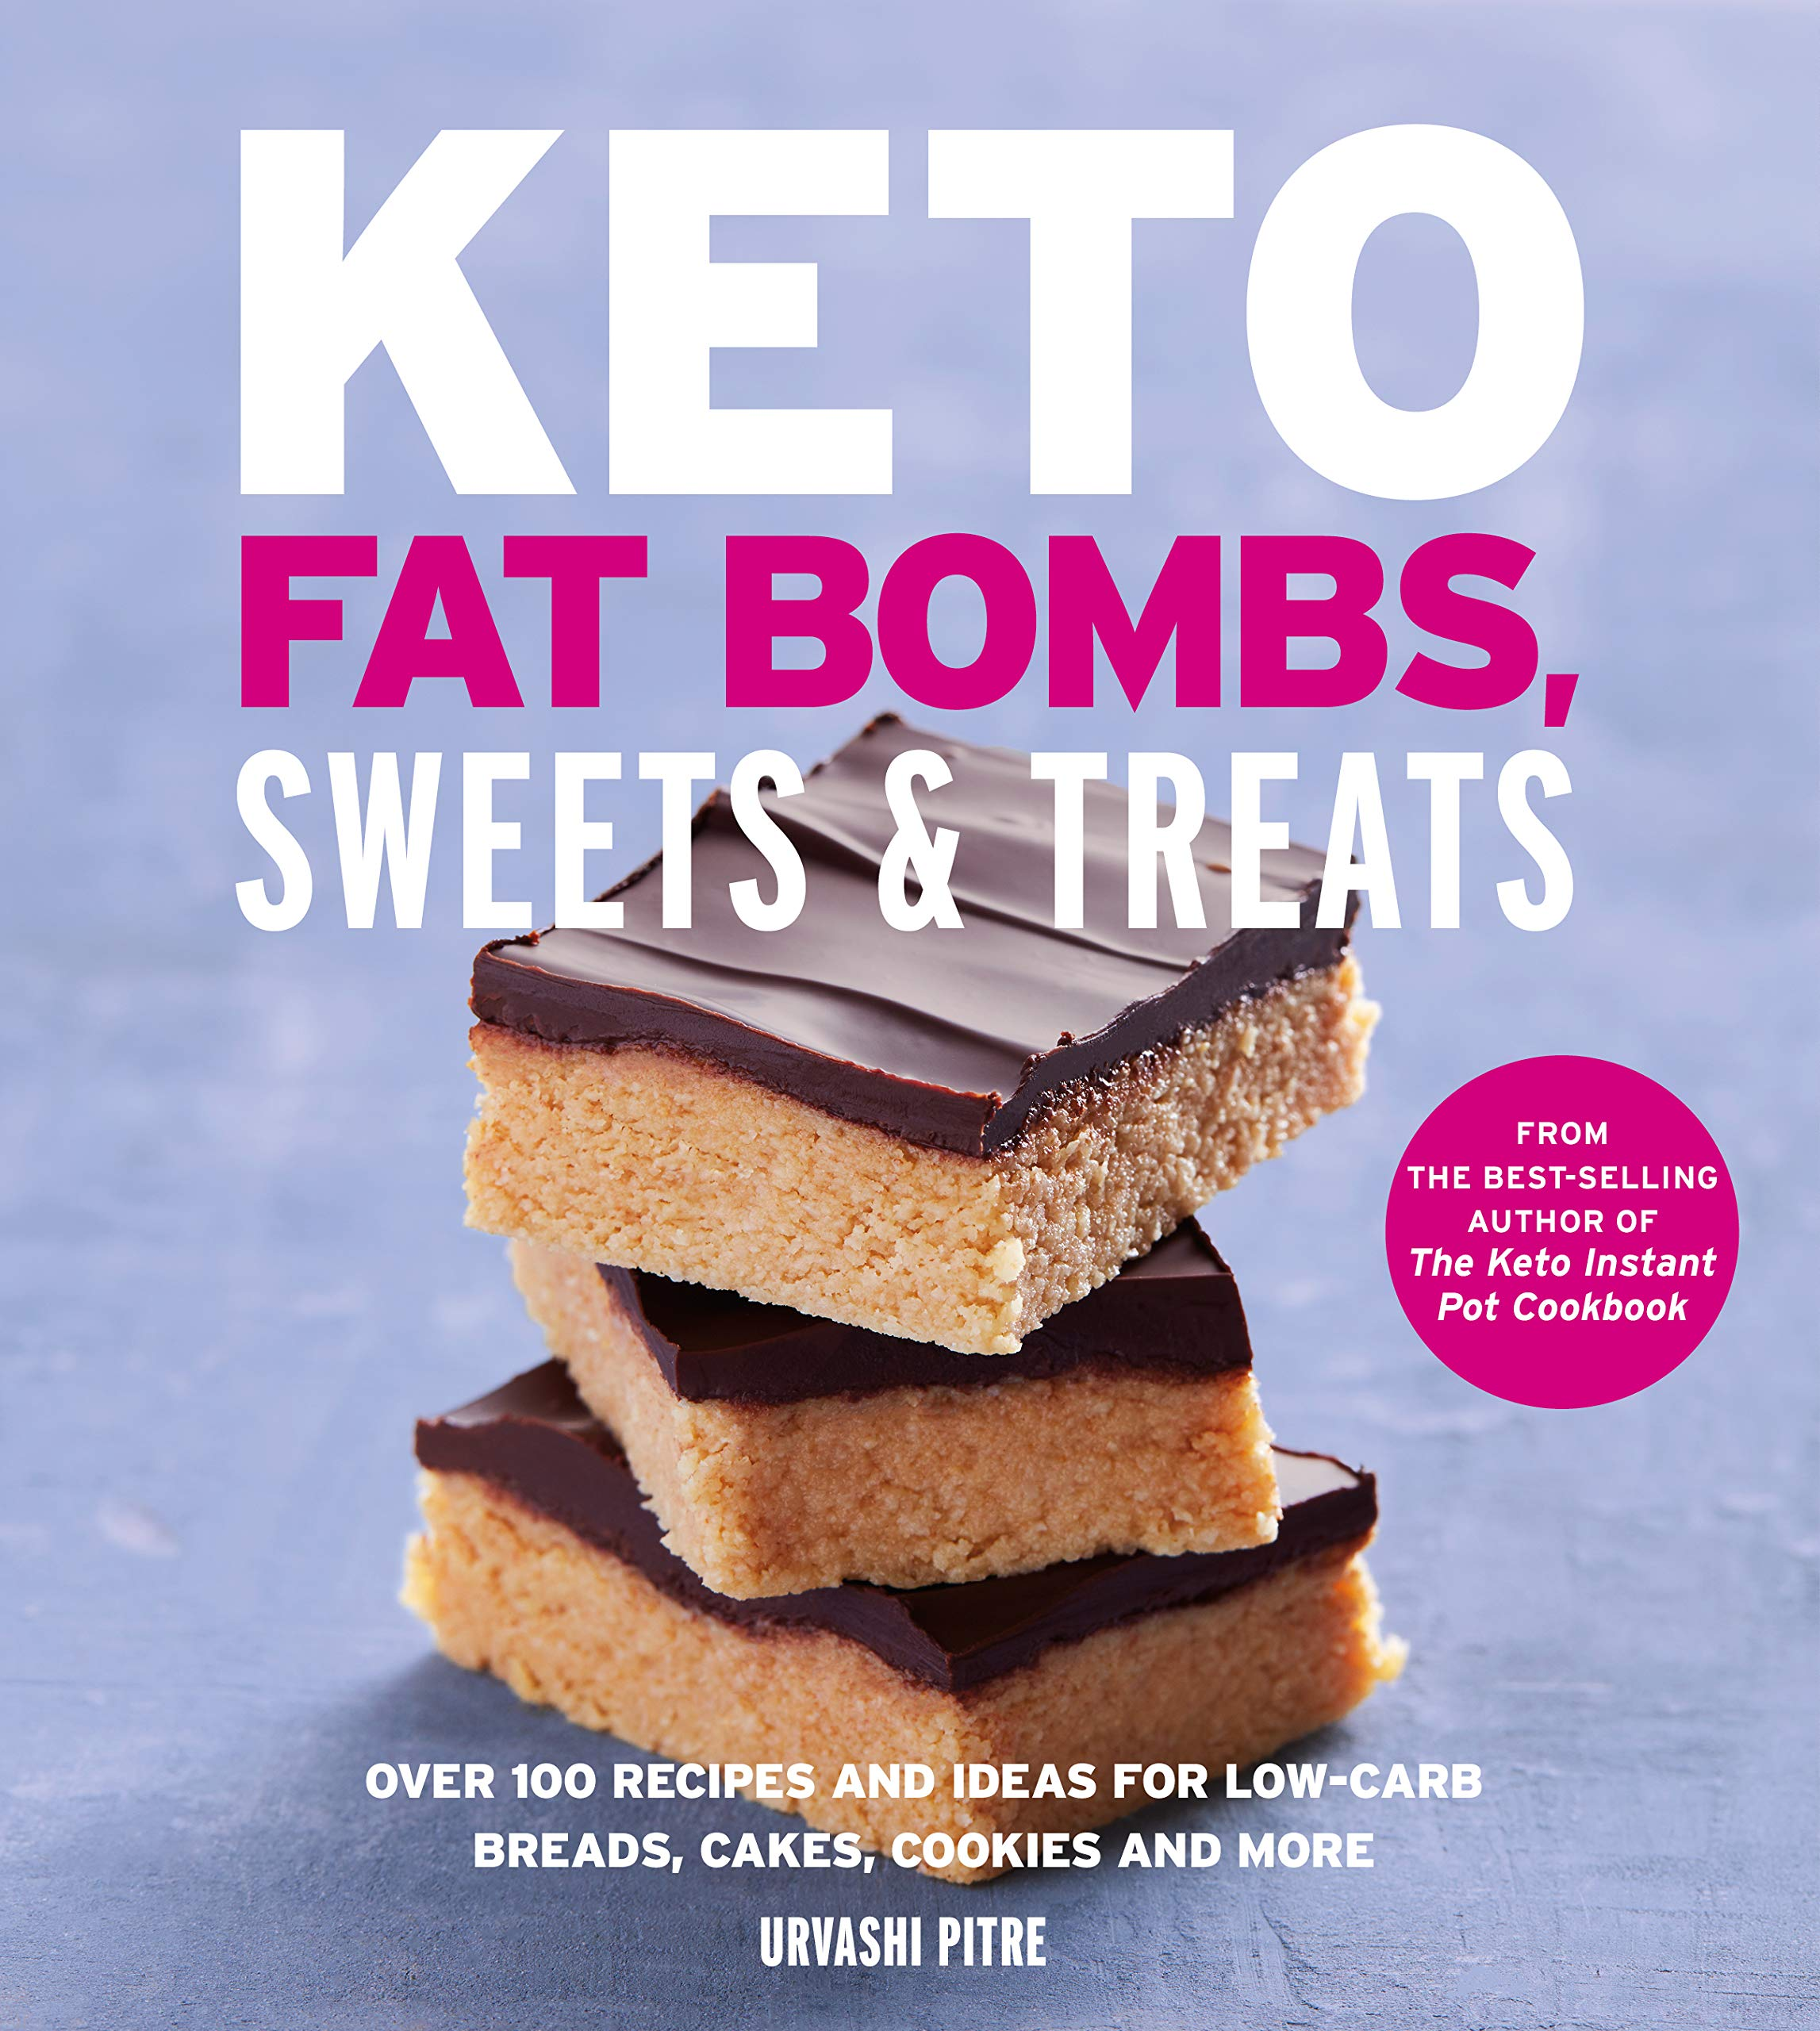 Keto Sweets  Keto-Friendly Dessert Recipes Coupon Code Military Discount June 2020